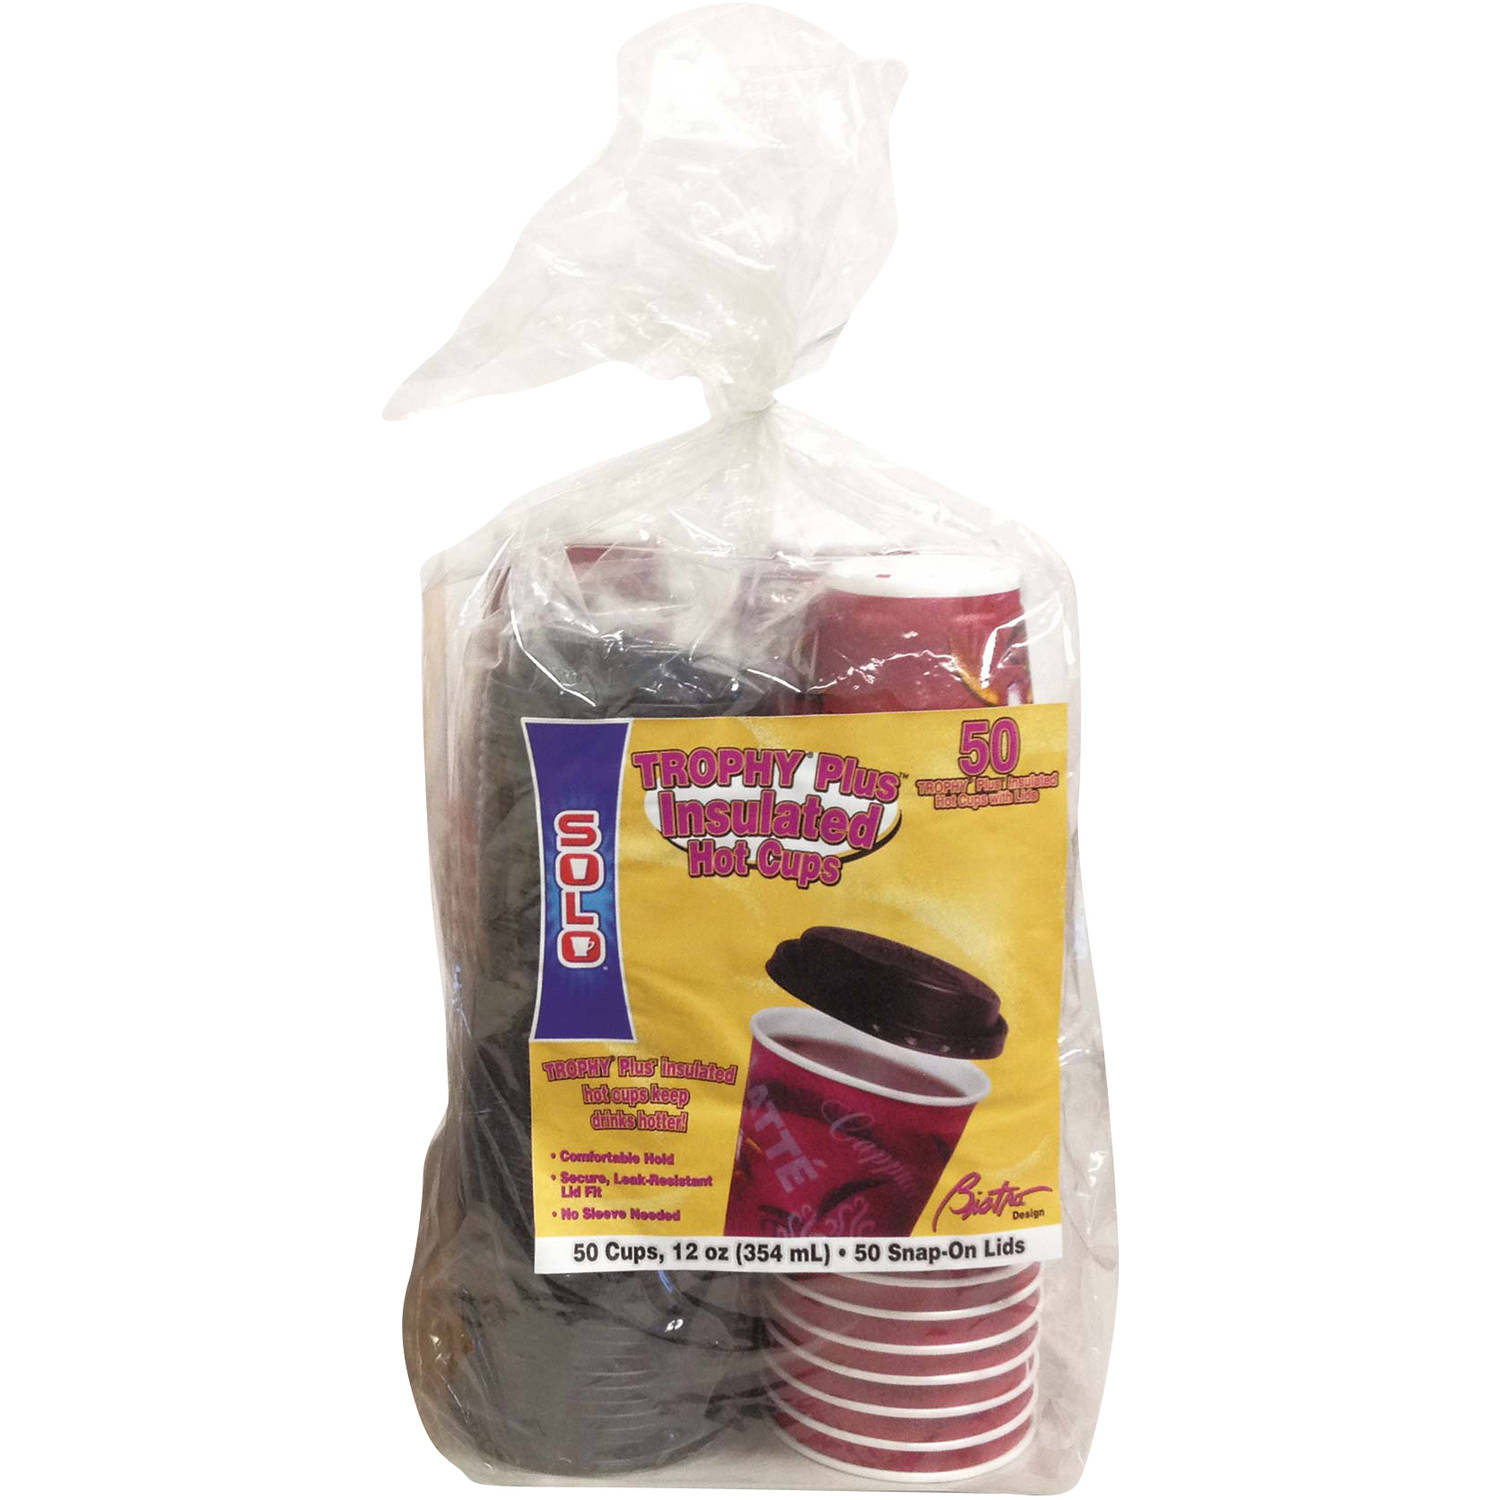 Solo Trophy Plus 12 Oz Insulated Hot Cups with Snap-on Lids, Maroon, 300 count